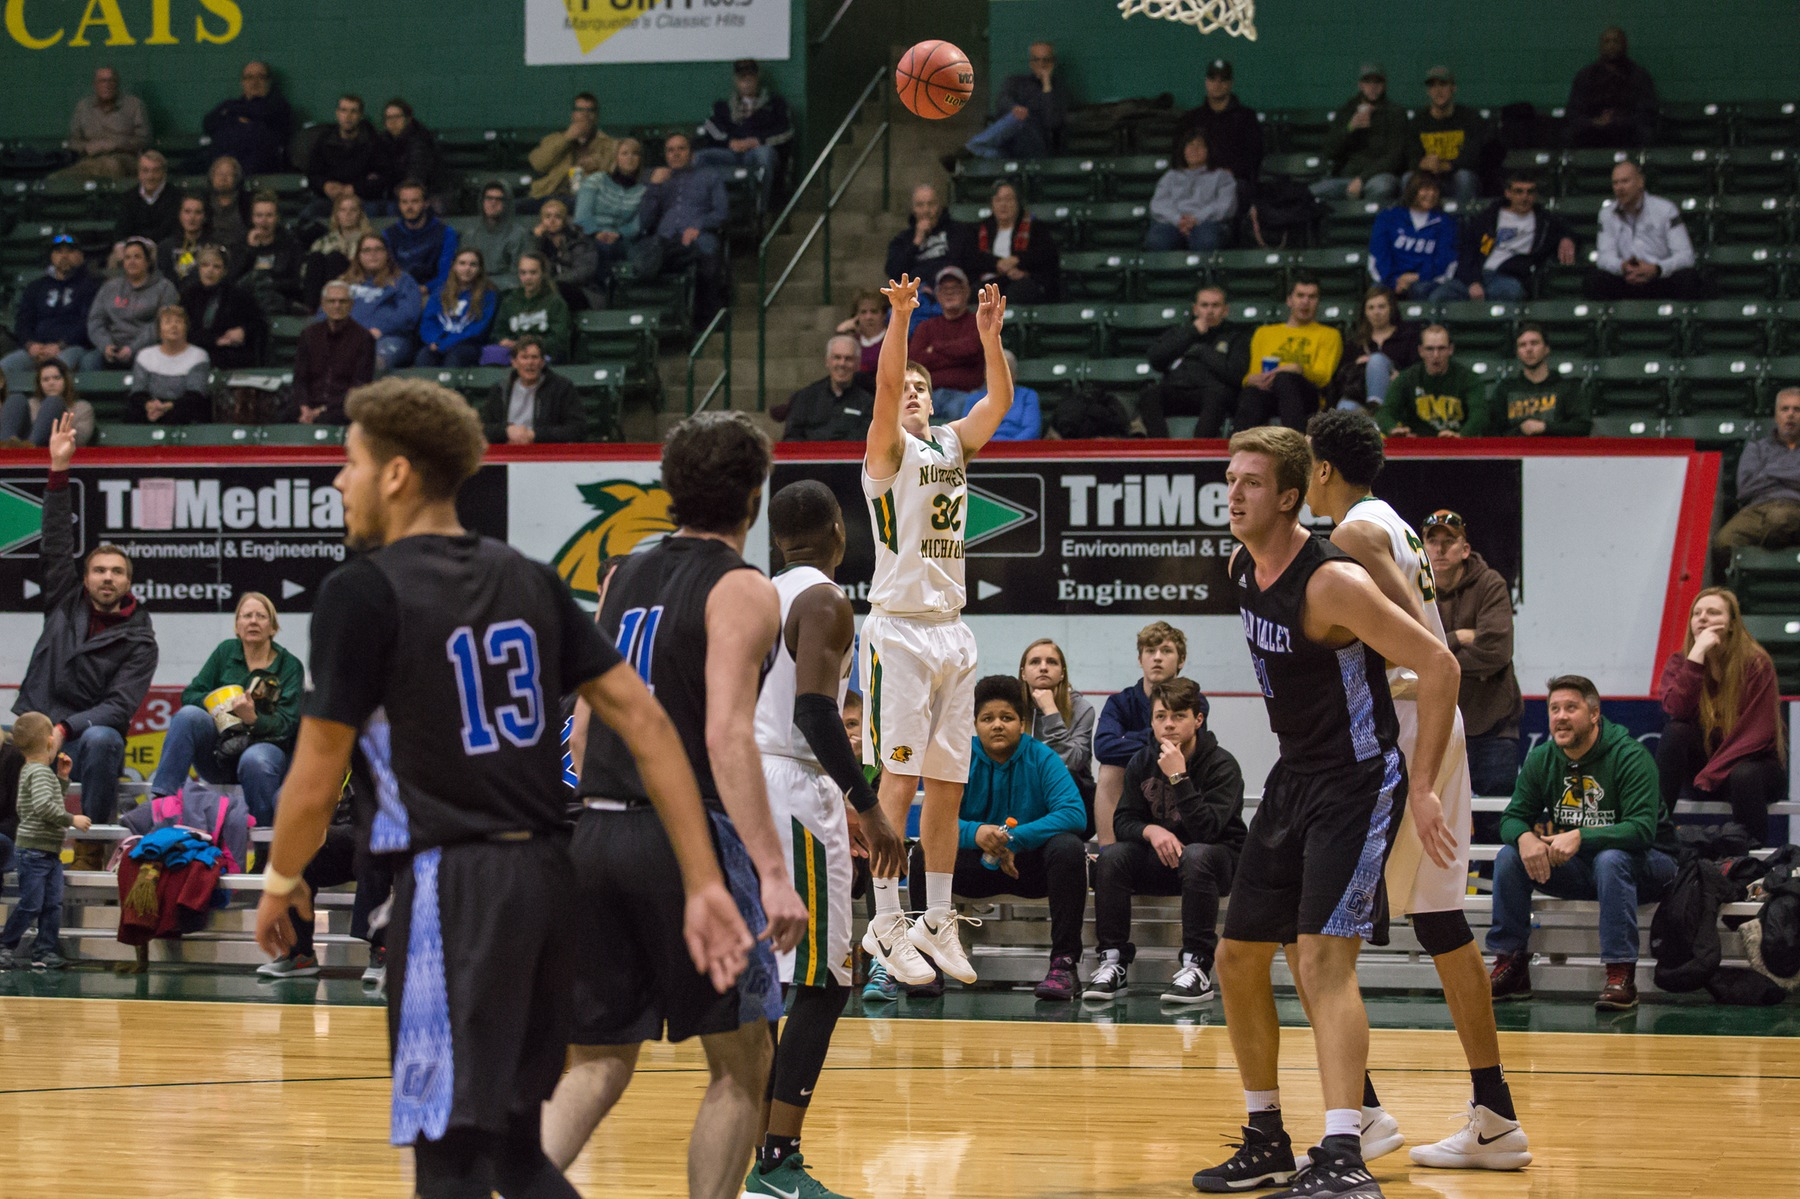 Men's Basketball Hits the Road for Final GLIAC Road Games